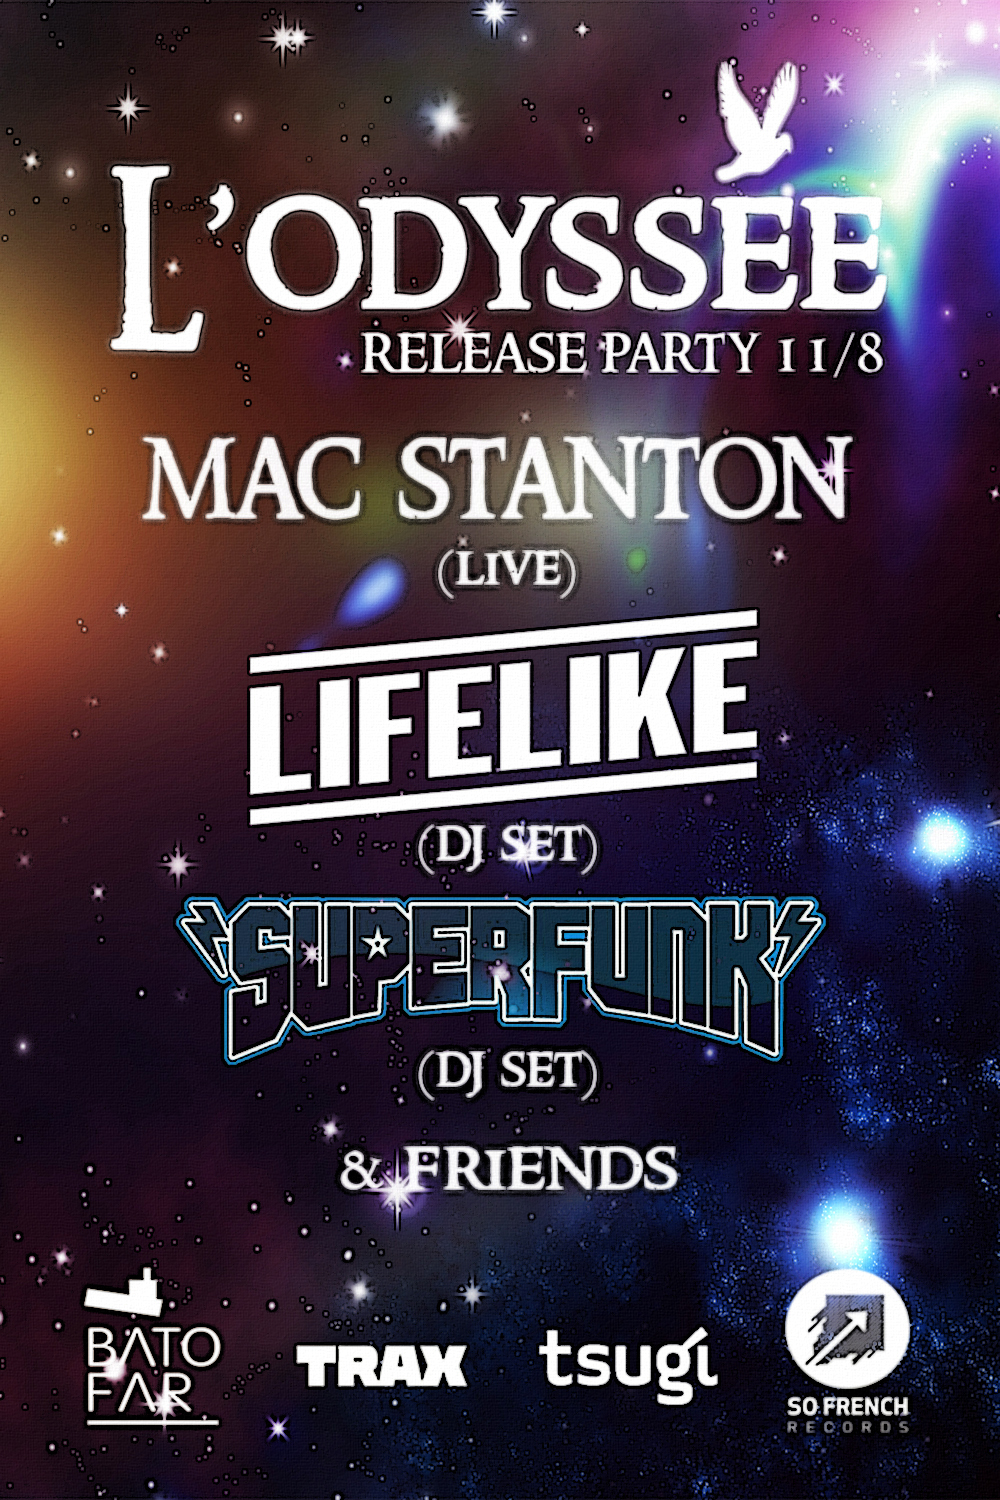 So French Party presents L'Odyssée Release Party!With Lifelike/Superfunk/MacStanton@Batofar